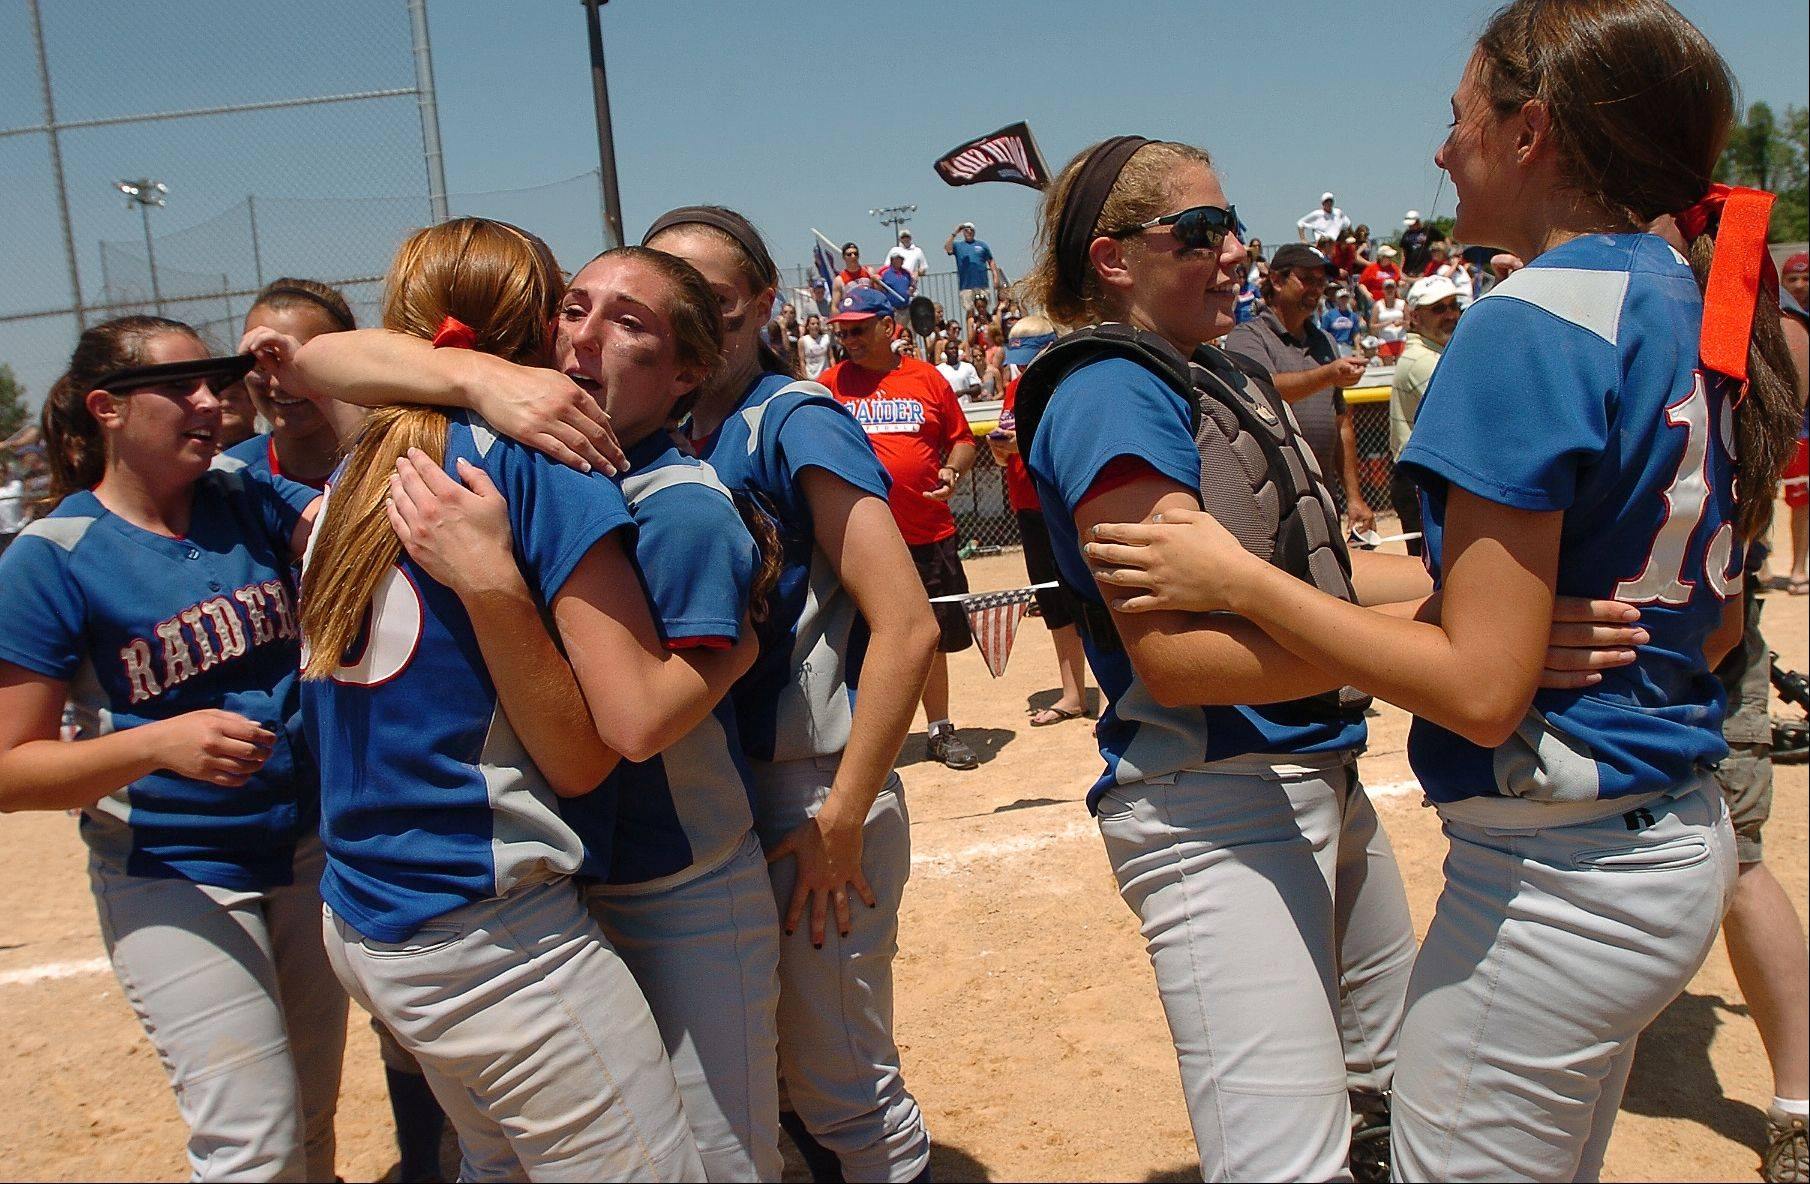 Glenbard South celebrates after capturing the class 3A state softball championship.